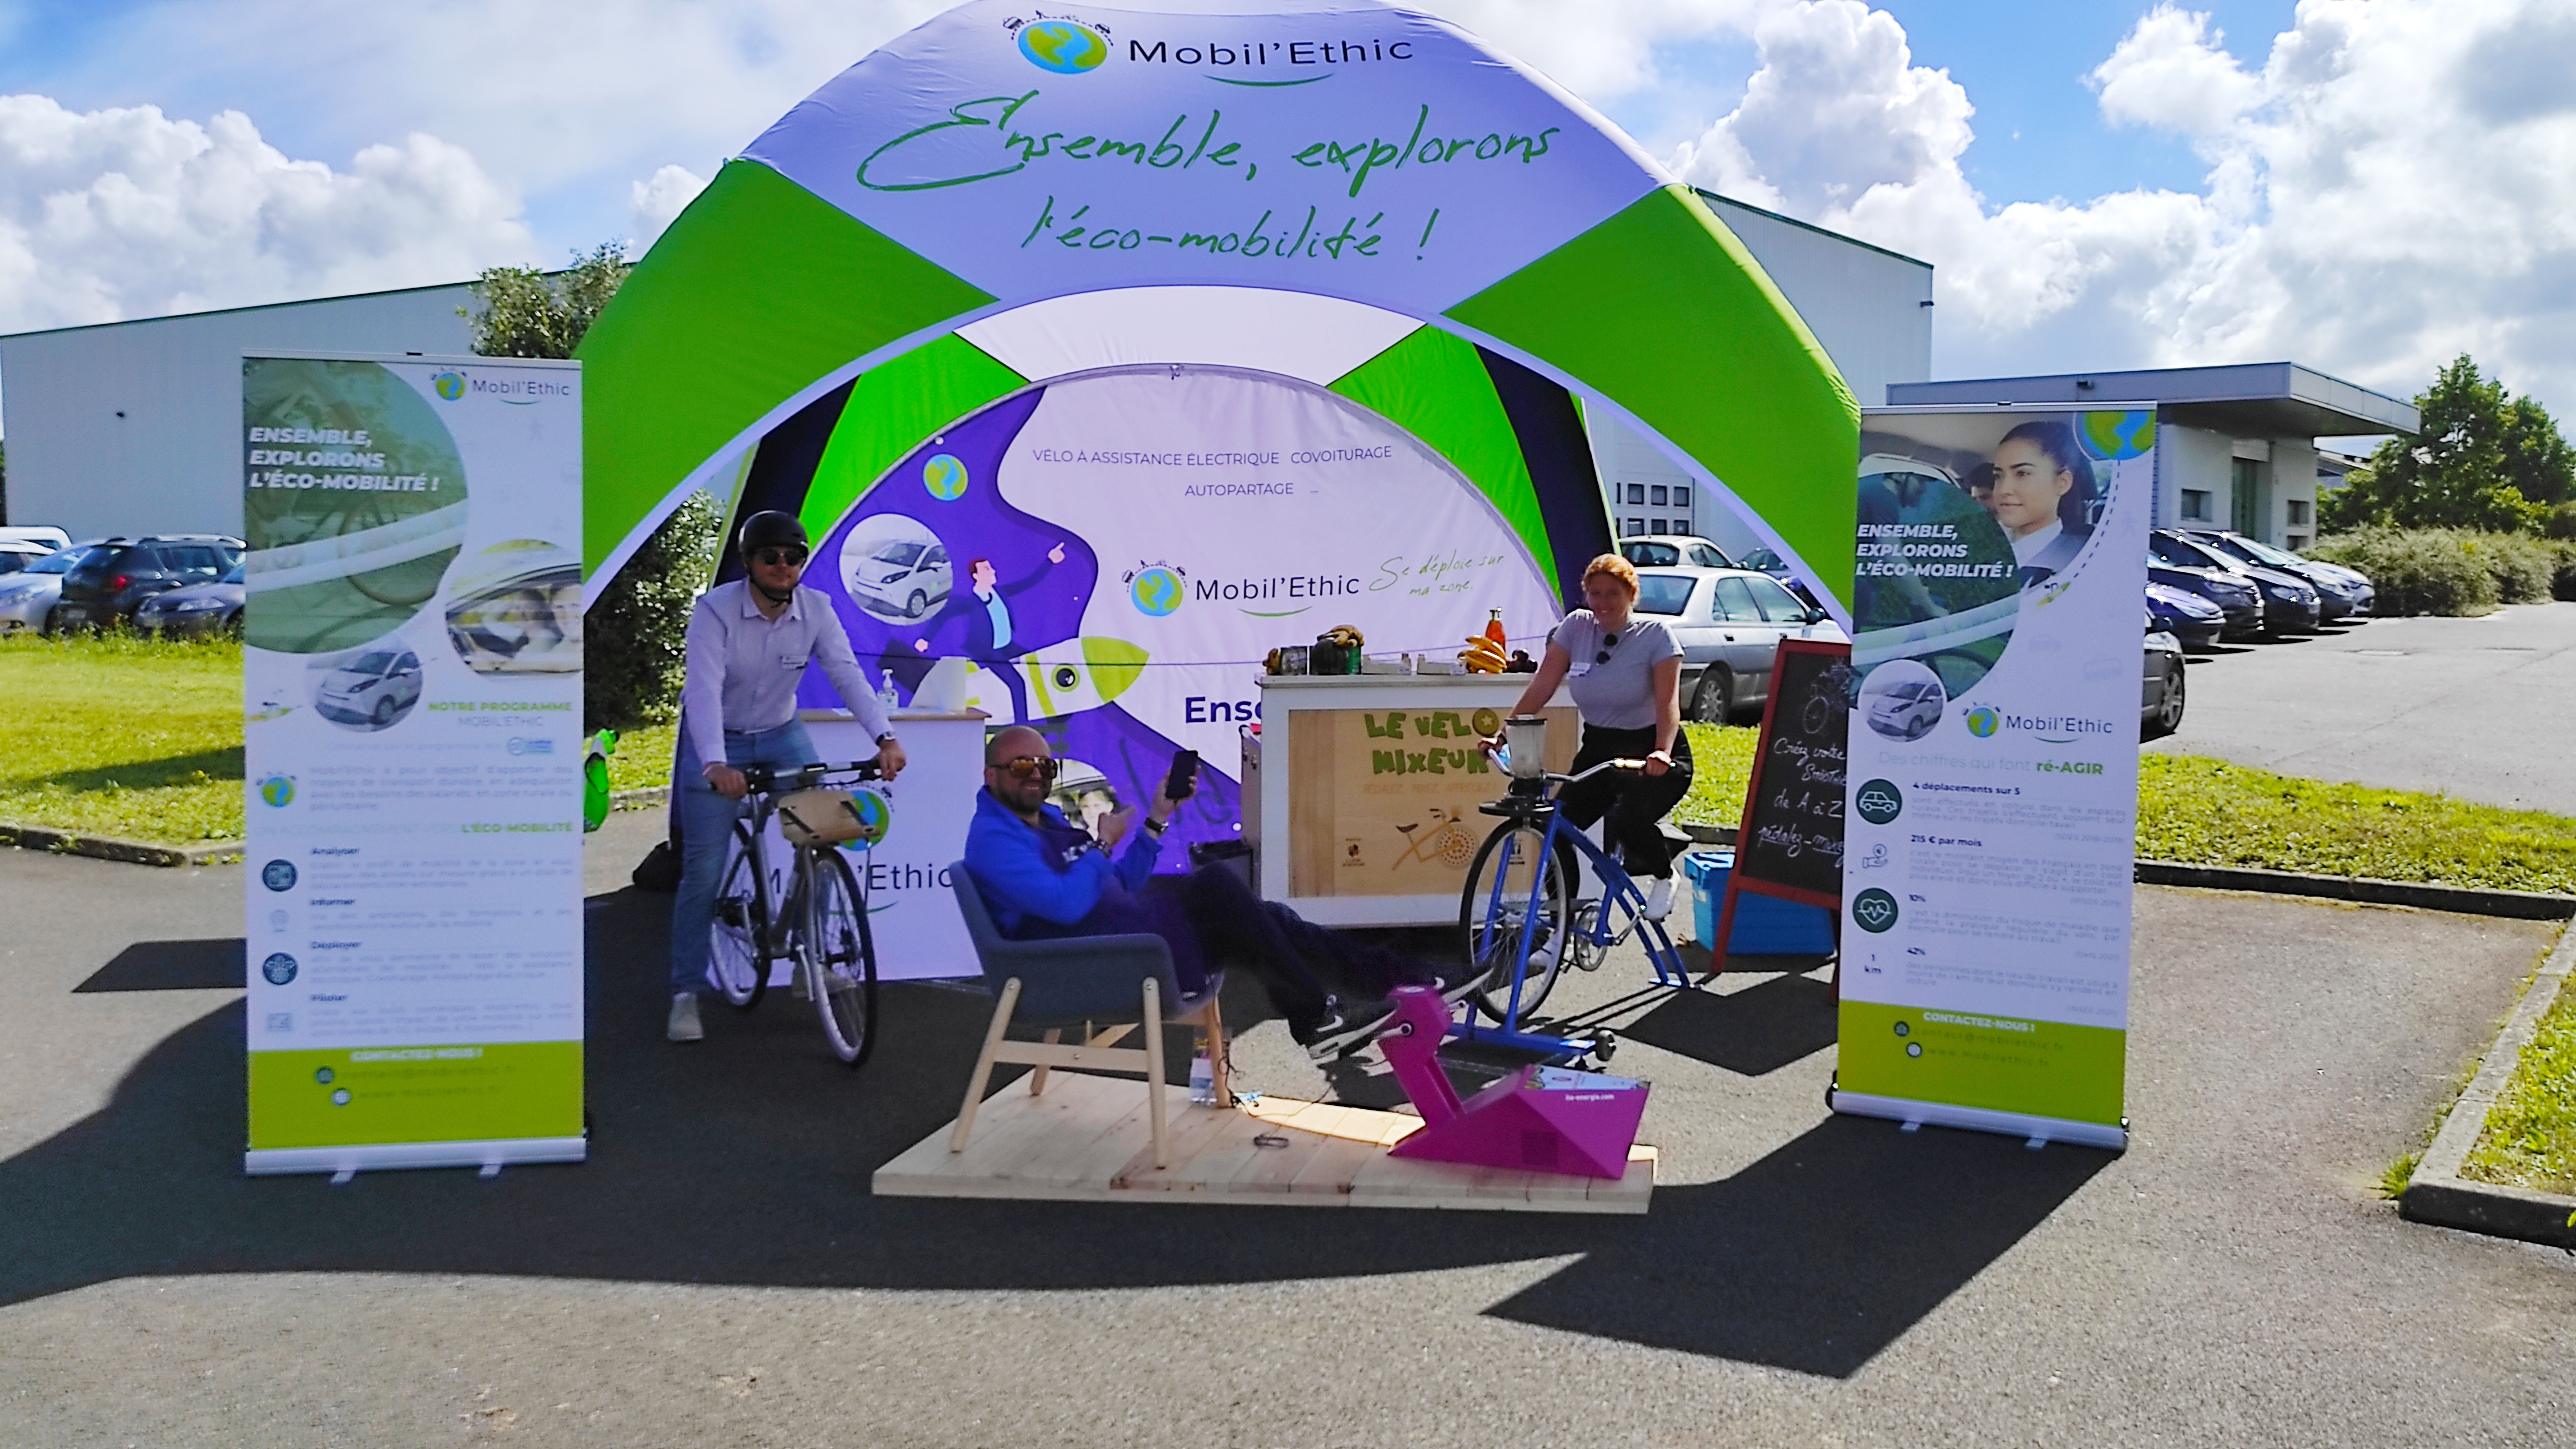 Stand Mobil'Ethic